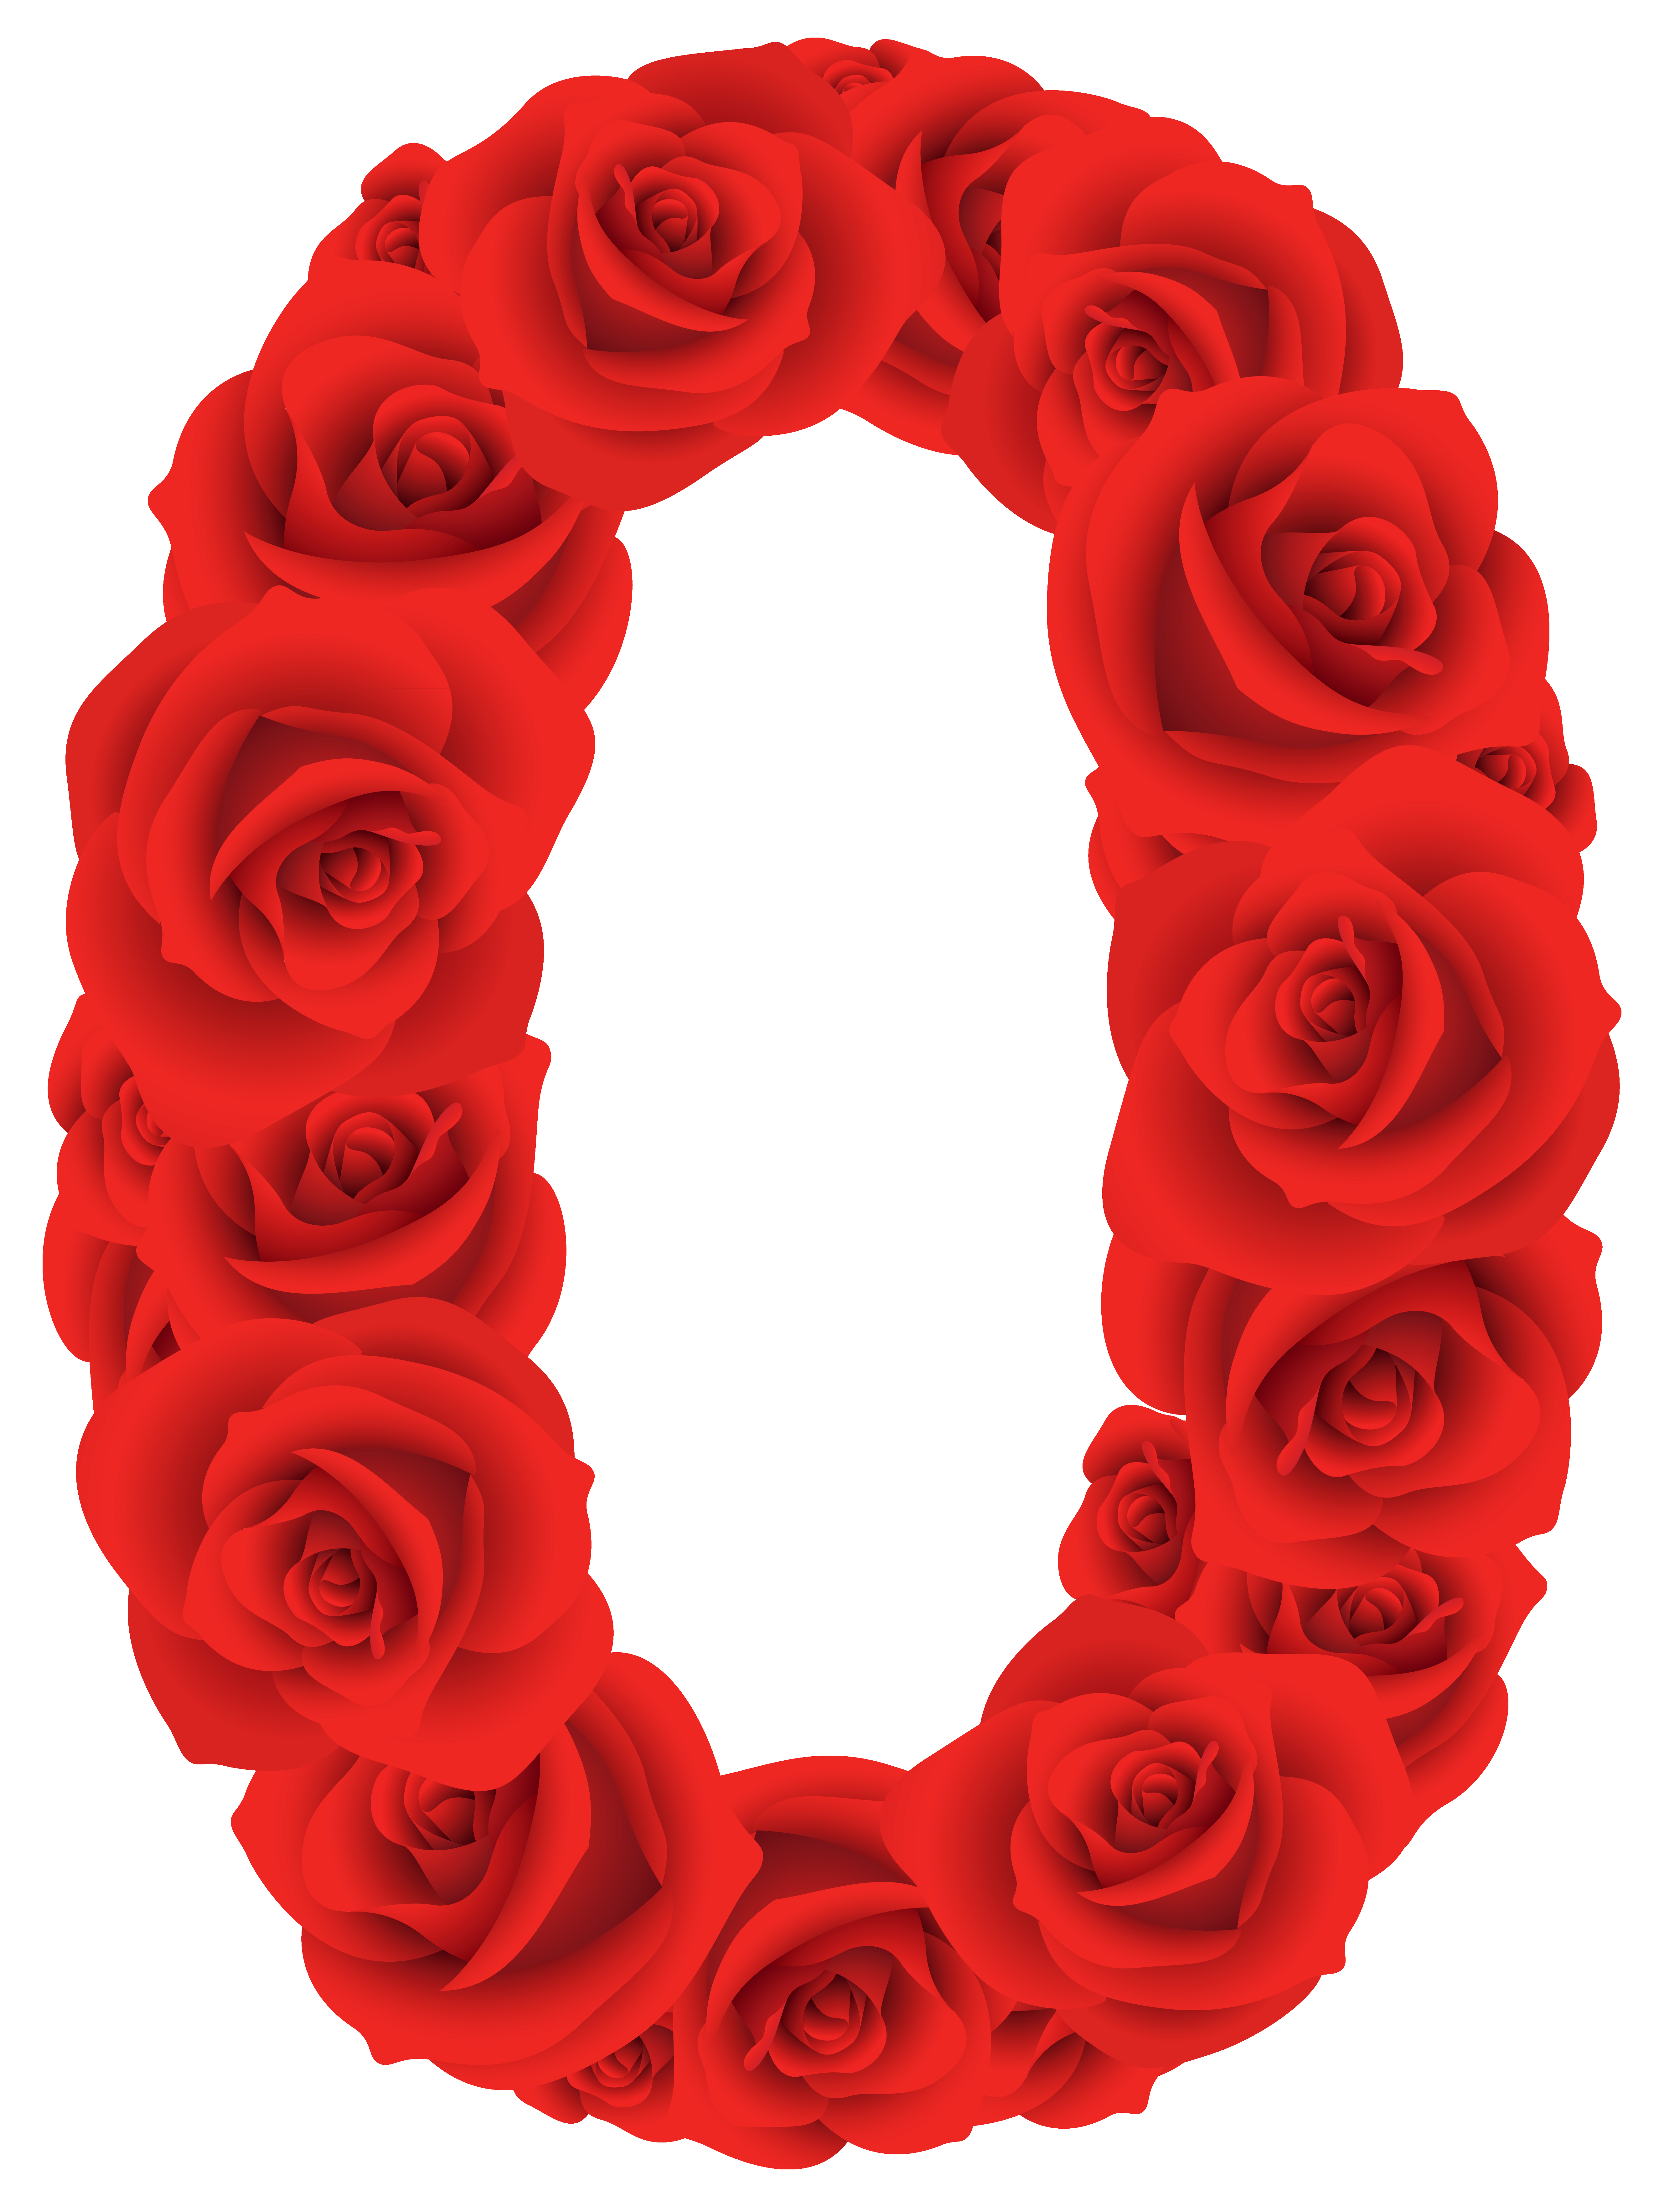 Red roses zero png. Flower clipart number